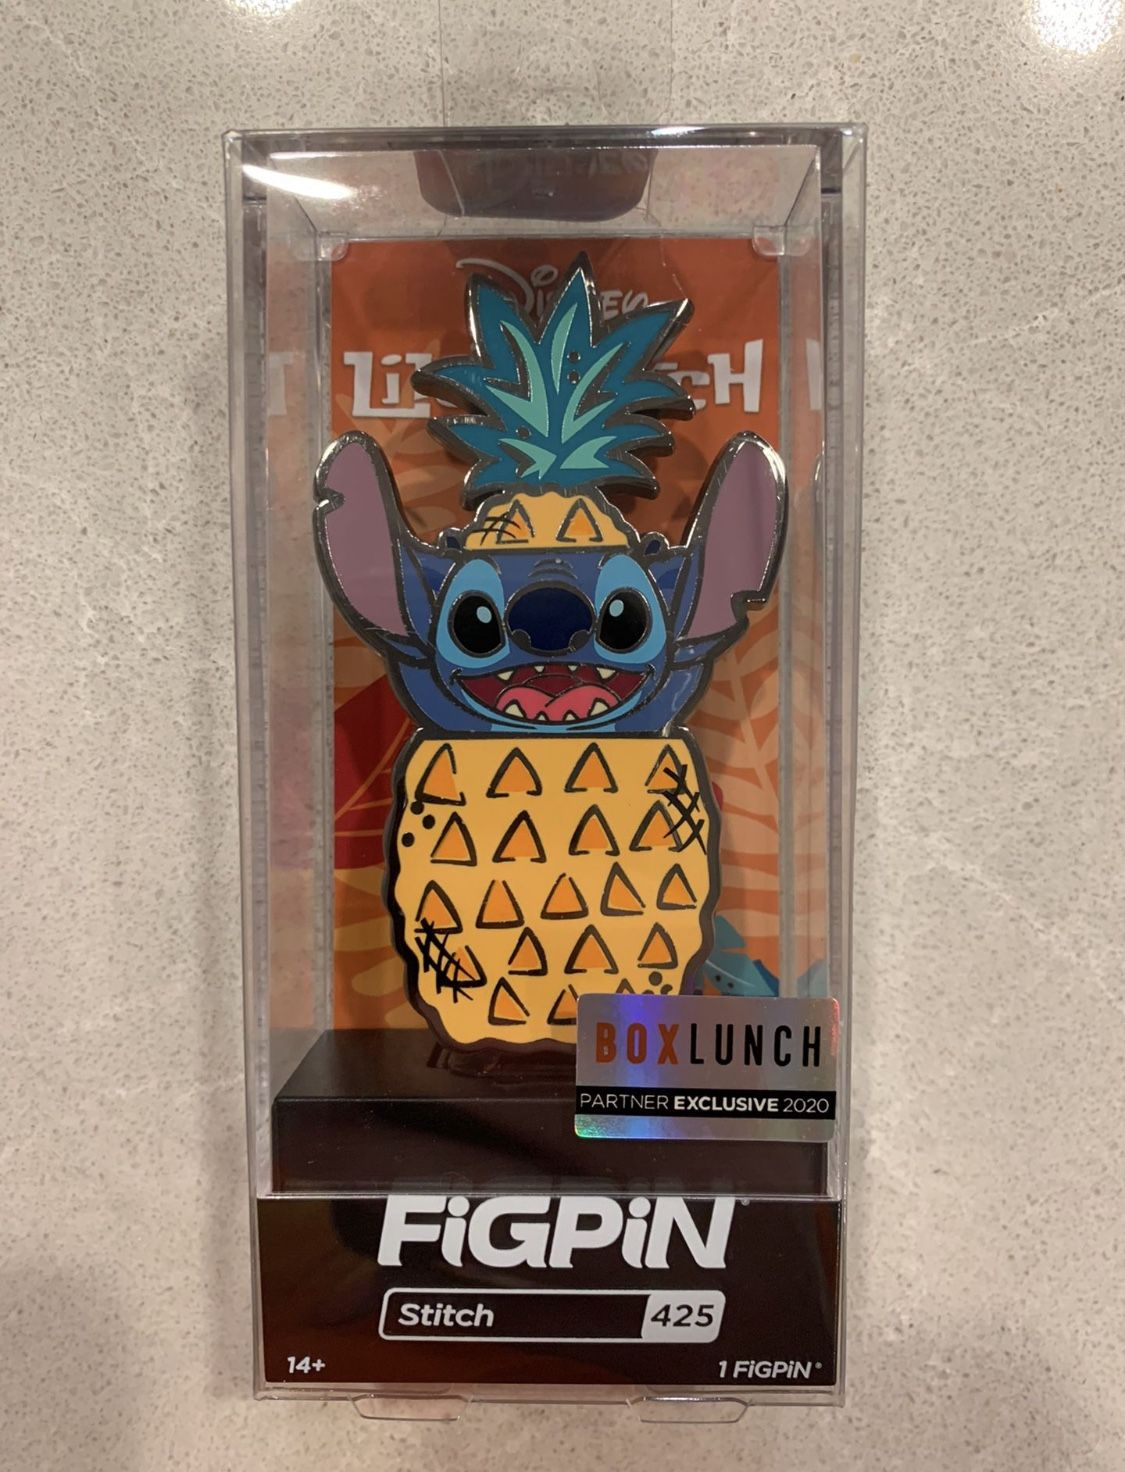 Pineapple Stitch FiGPiN Limited Edition LE2000 BoxLunch Exclusive 425 Lilo Disney